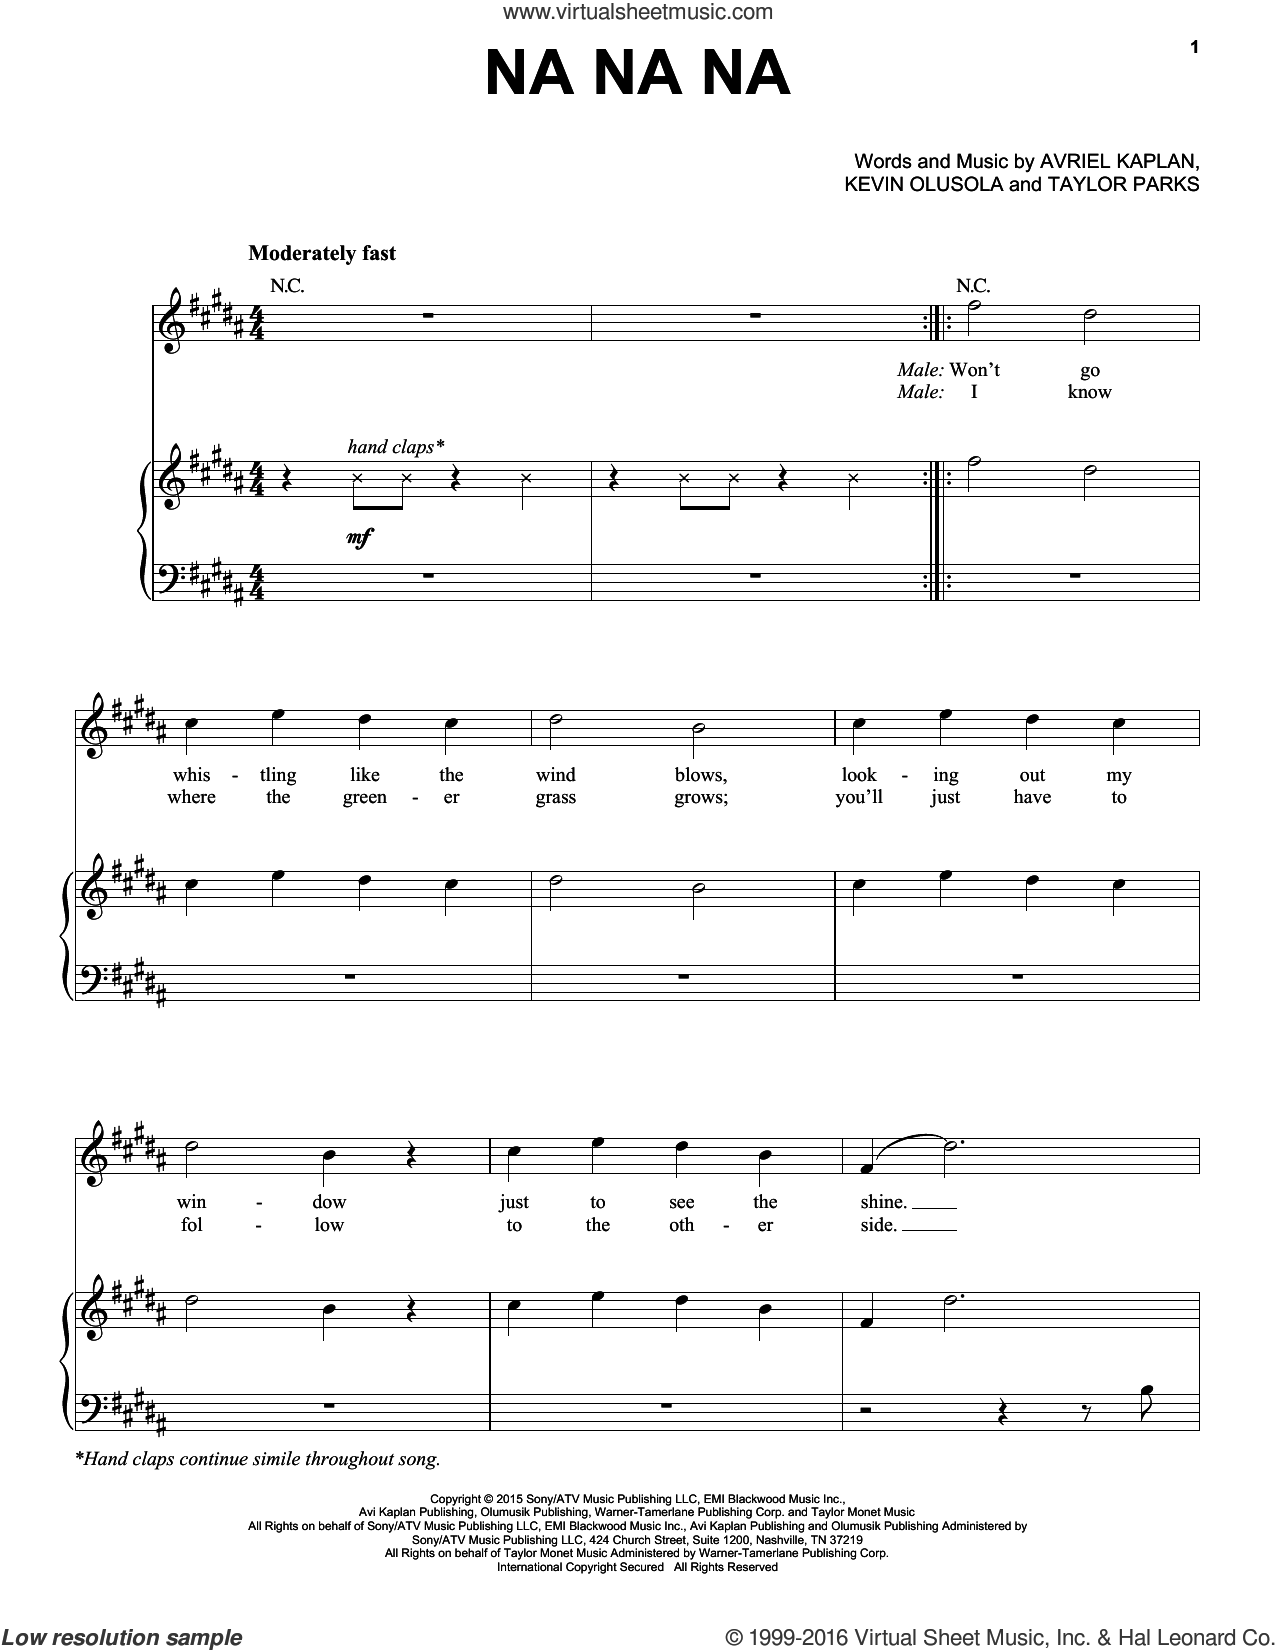 Na Na Na sheet music for voice, piano or guitar by Taylor Parks and Kevin Olusola. Score Image Preview.